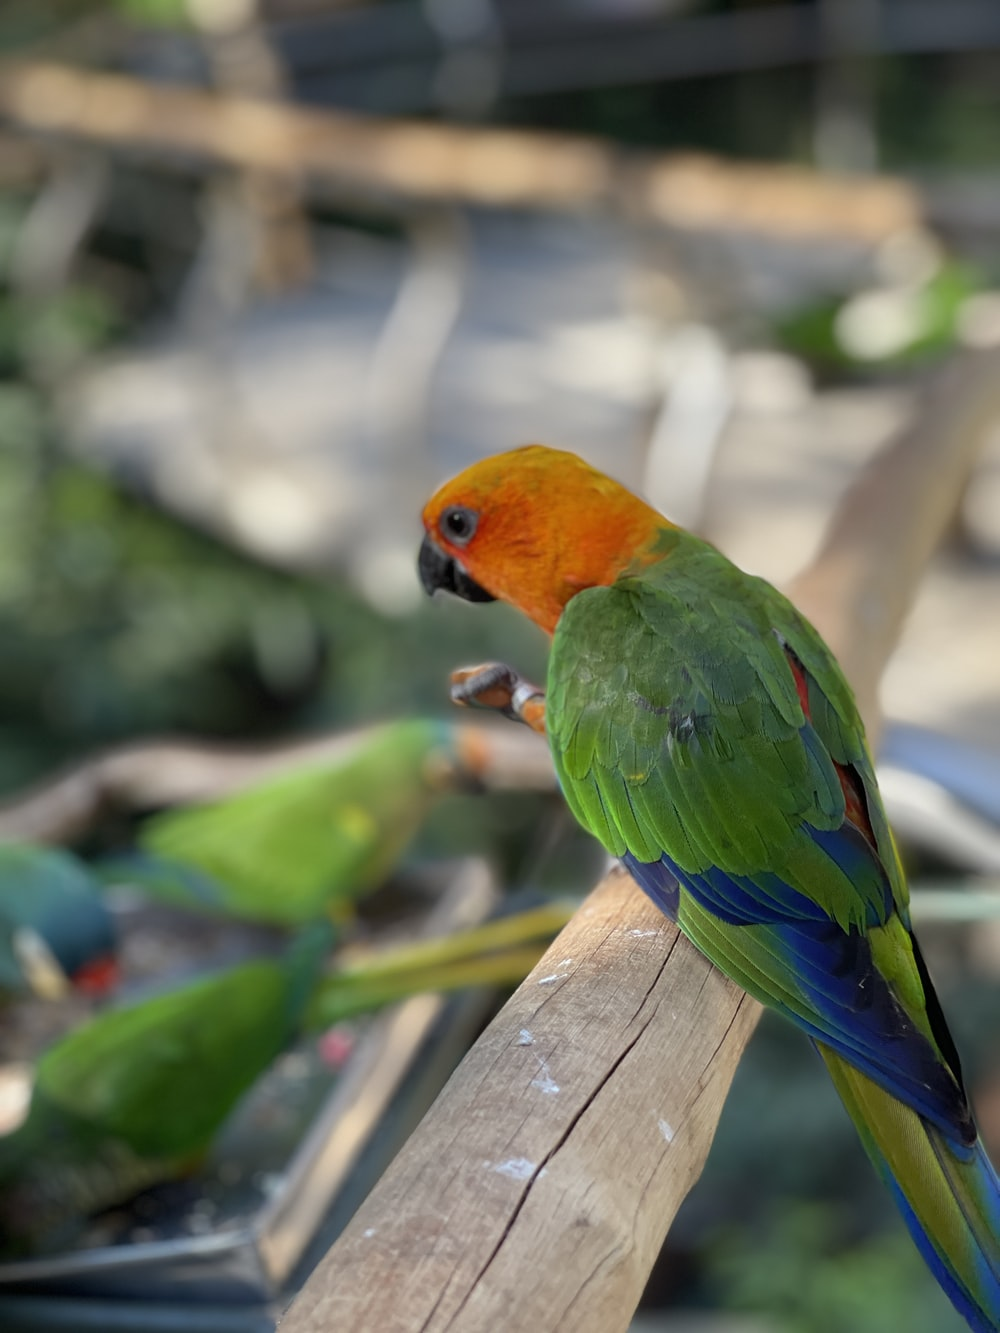 red green and yellow bird on brown wooden fence during daytime